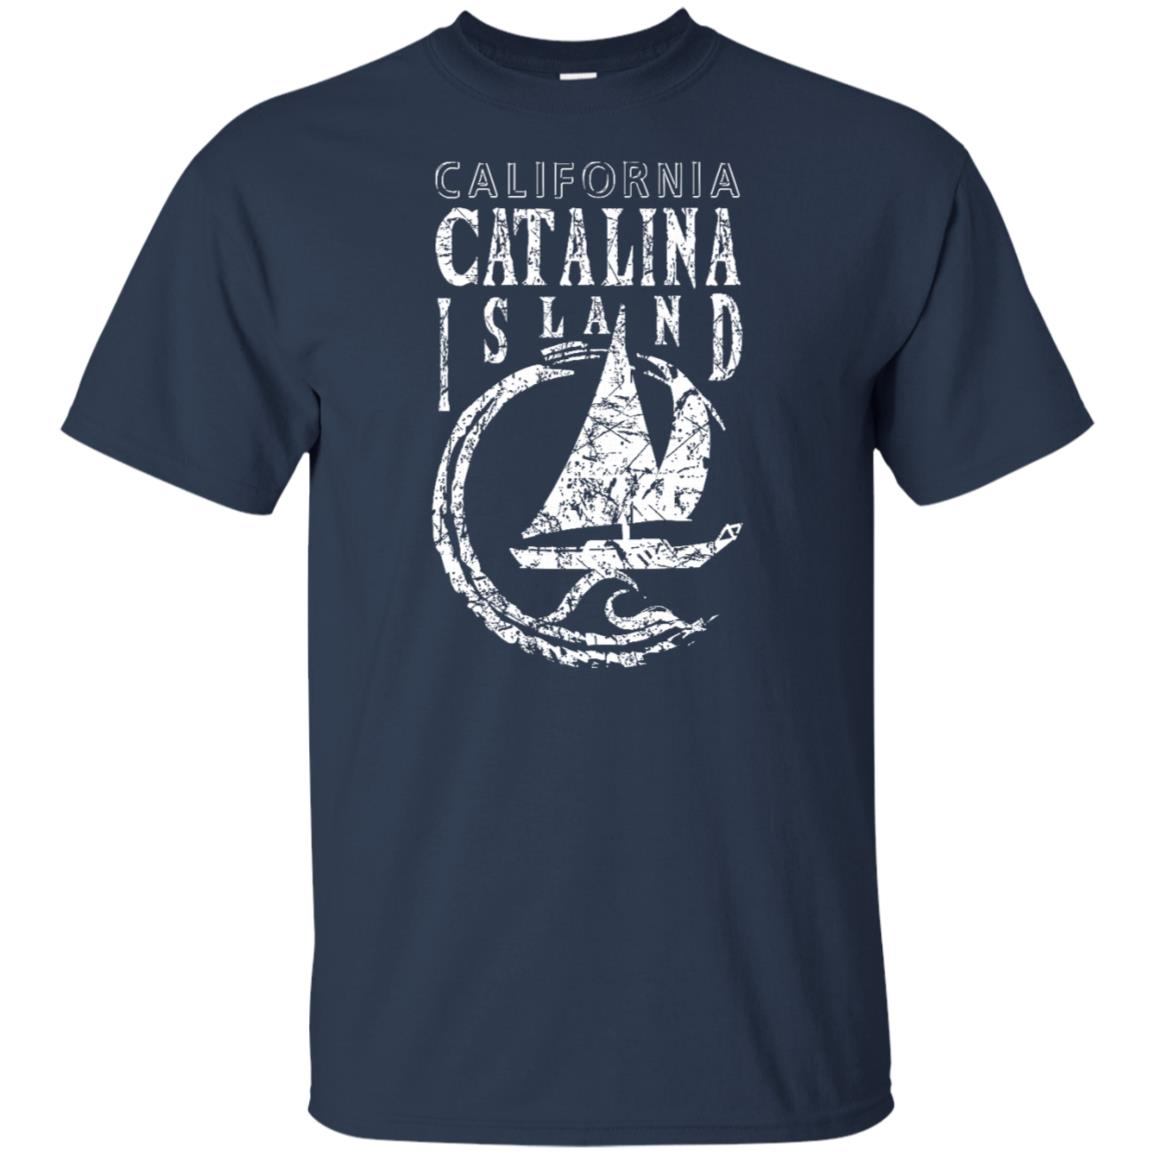 Catalina Island Sailing Sailboat Wave Unisex Short Sleeve